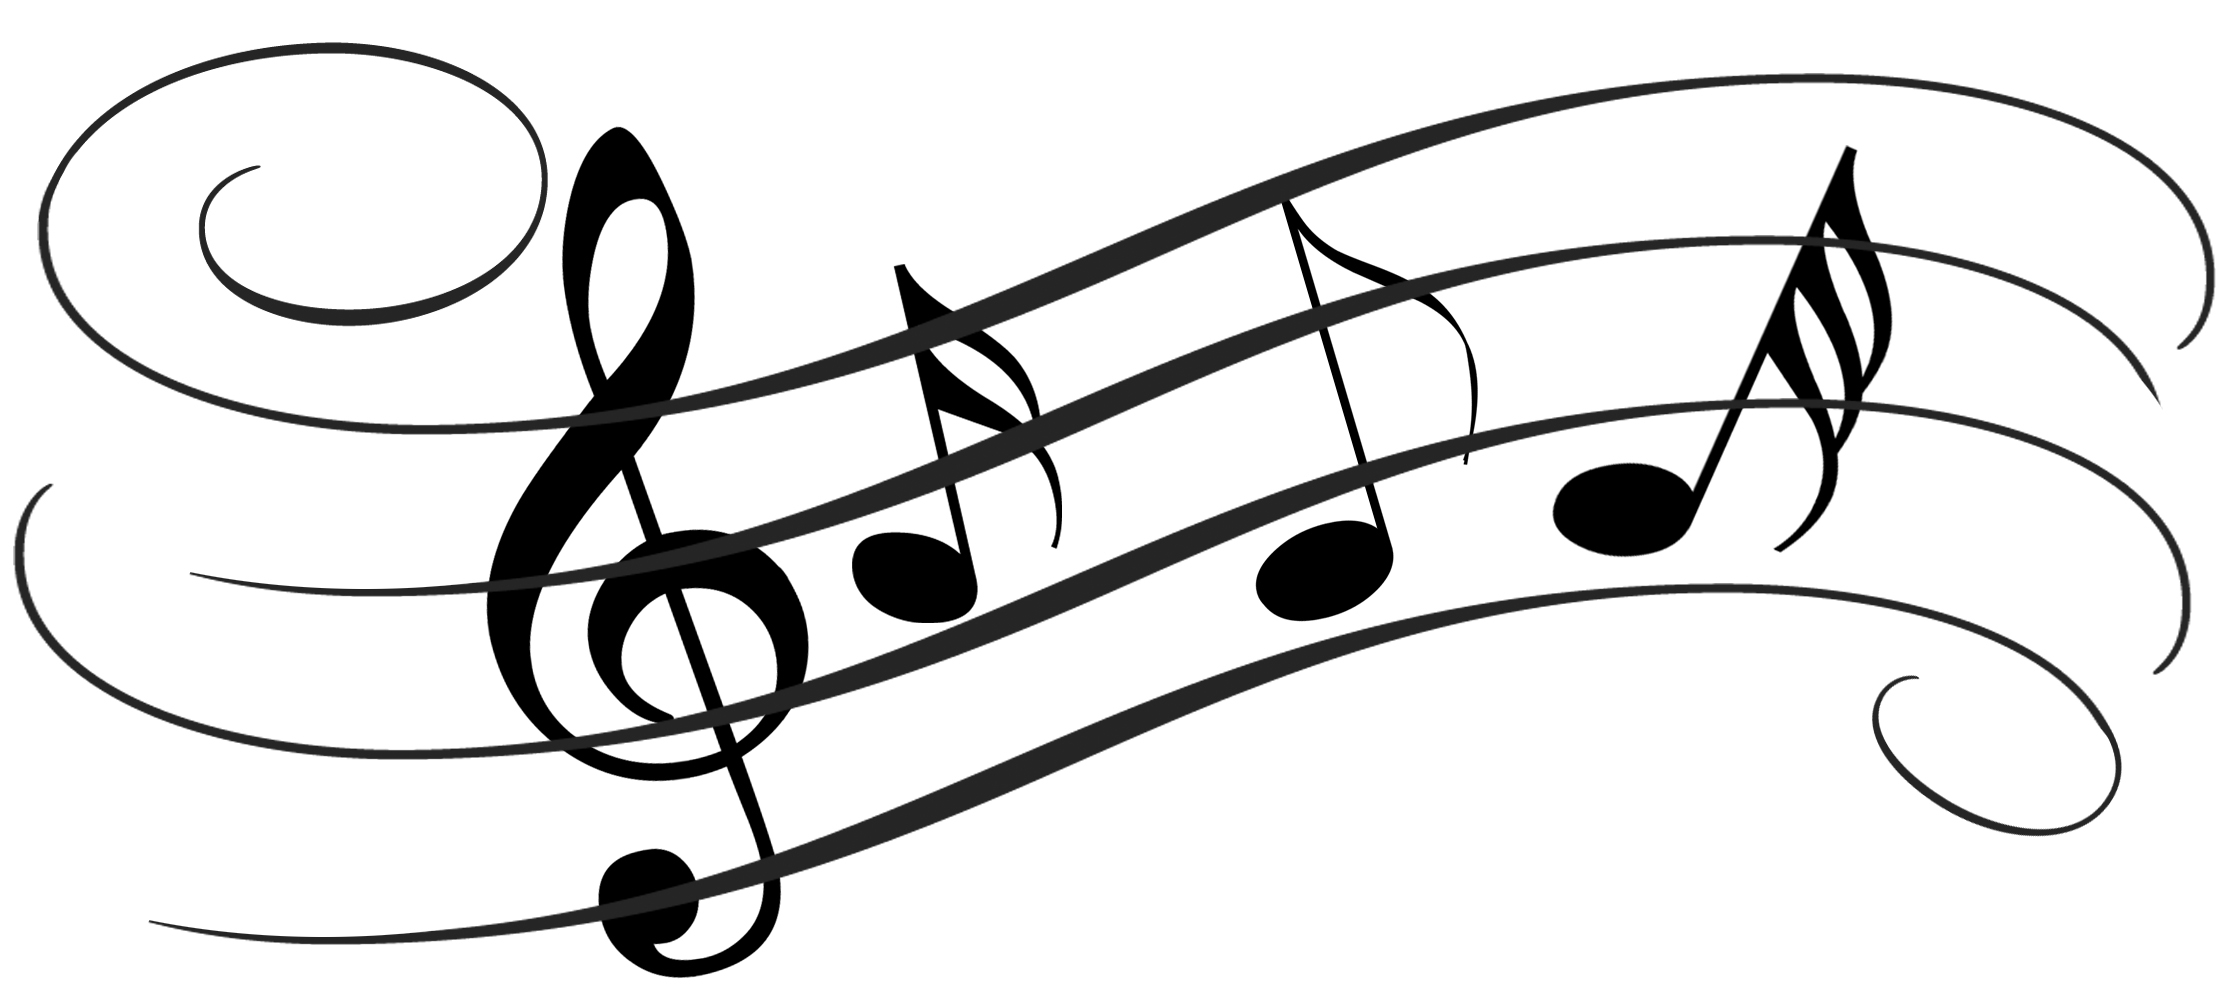 2236x1006 Song Clipart Black And White